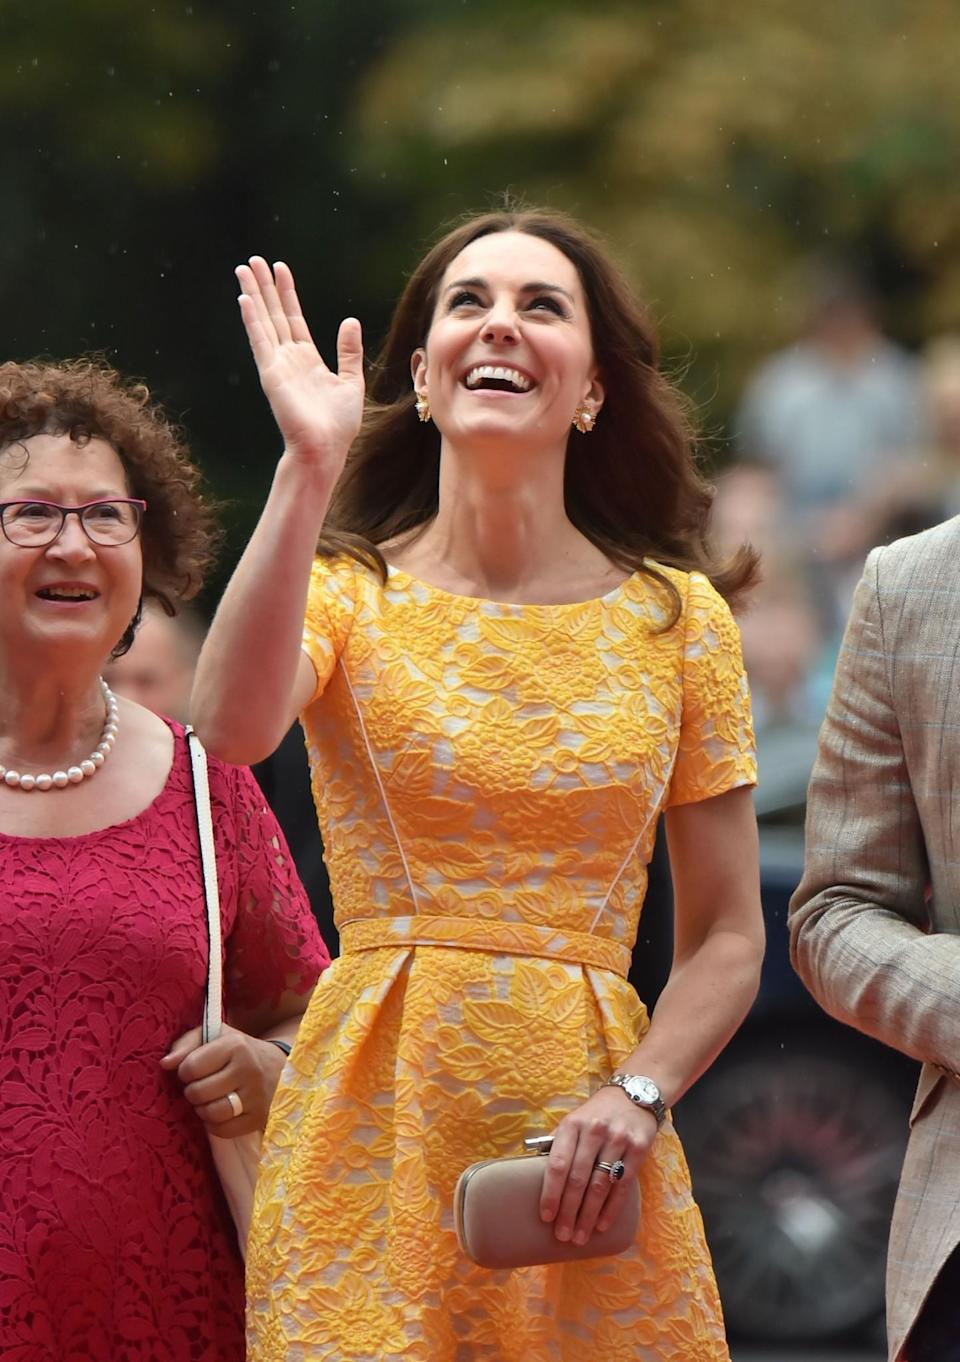 <p><b><b><b>The royals were faced with yet more joyous crowds as they arrived at a German Cancer Research Institute in Heidelberg on day four of their tour. For the occasion, the Duchess wore a lemon yellow Jenny Packham dress – which considerably brightened up the dreamy weather. <em>[Photo: PA]</em> </b></b></b></p>